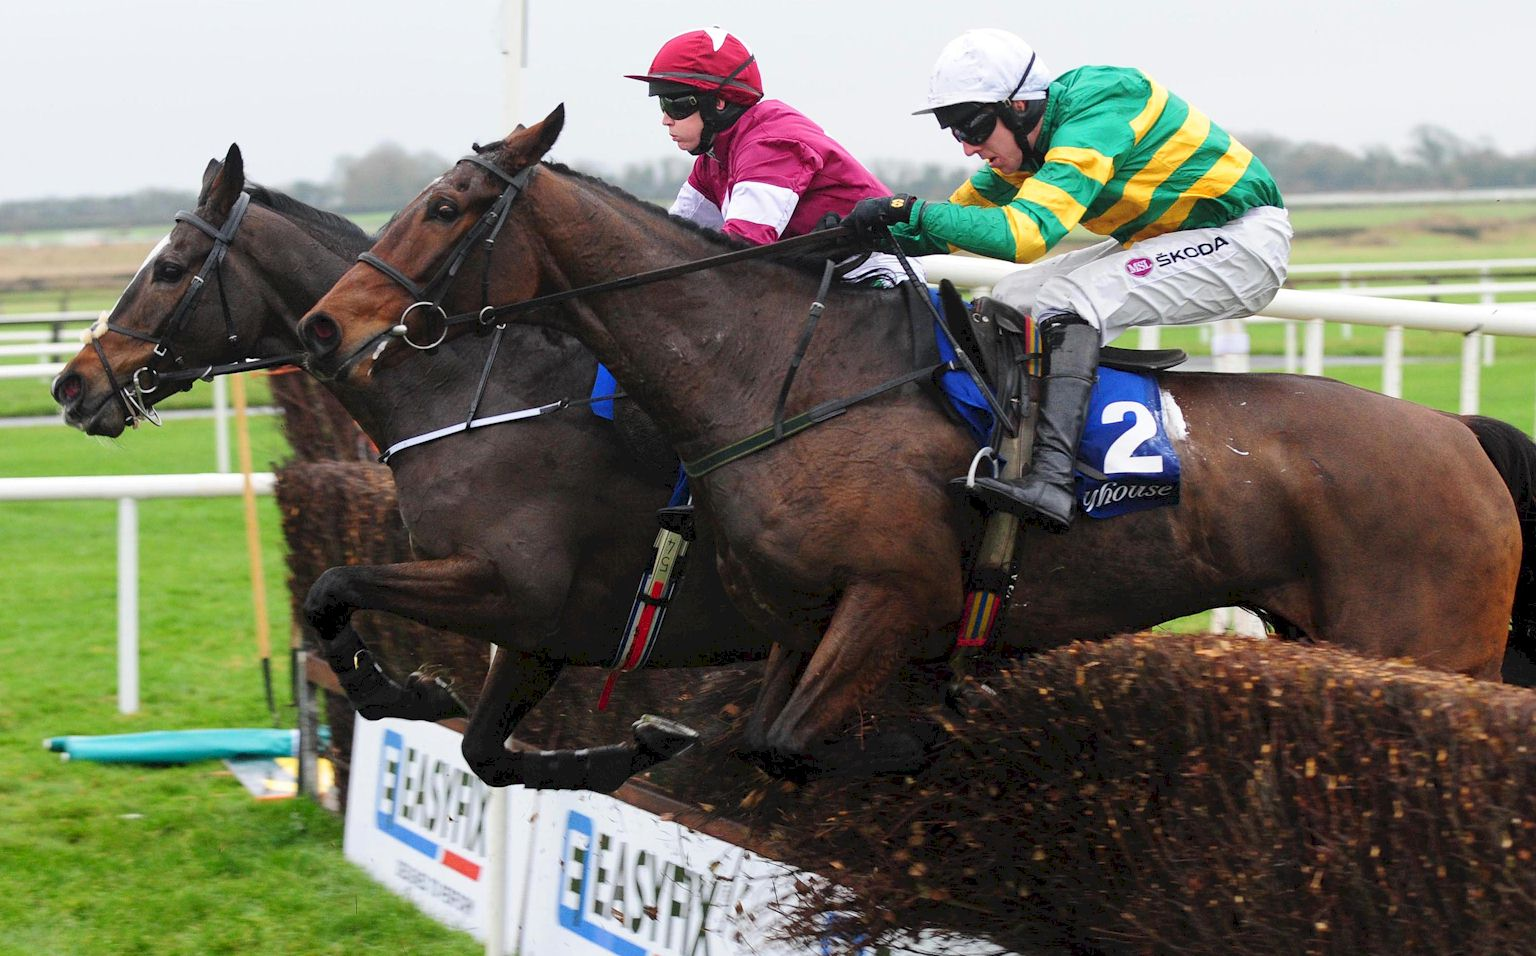 Irish Grand National Festival - Official Partner Packages